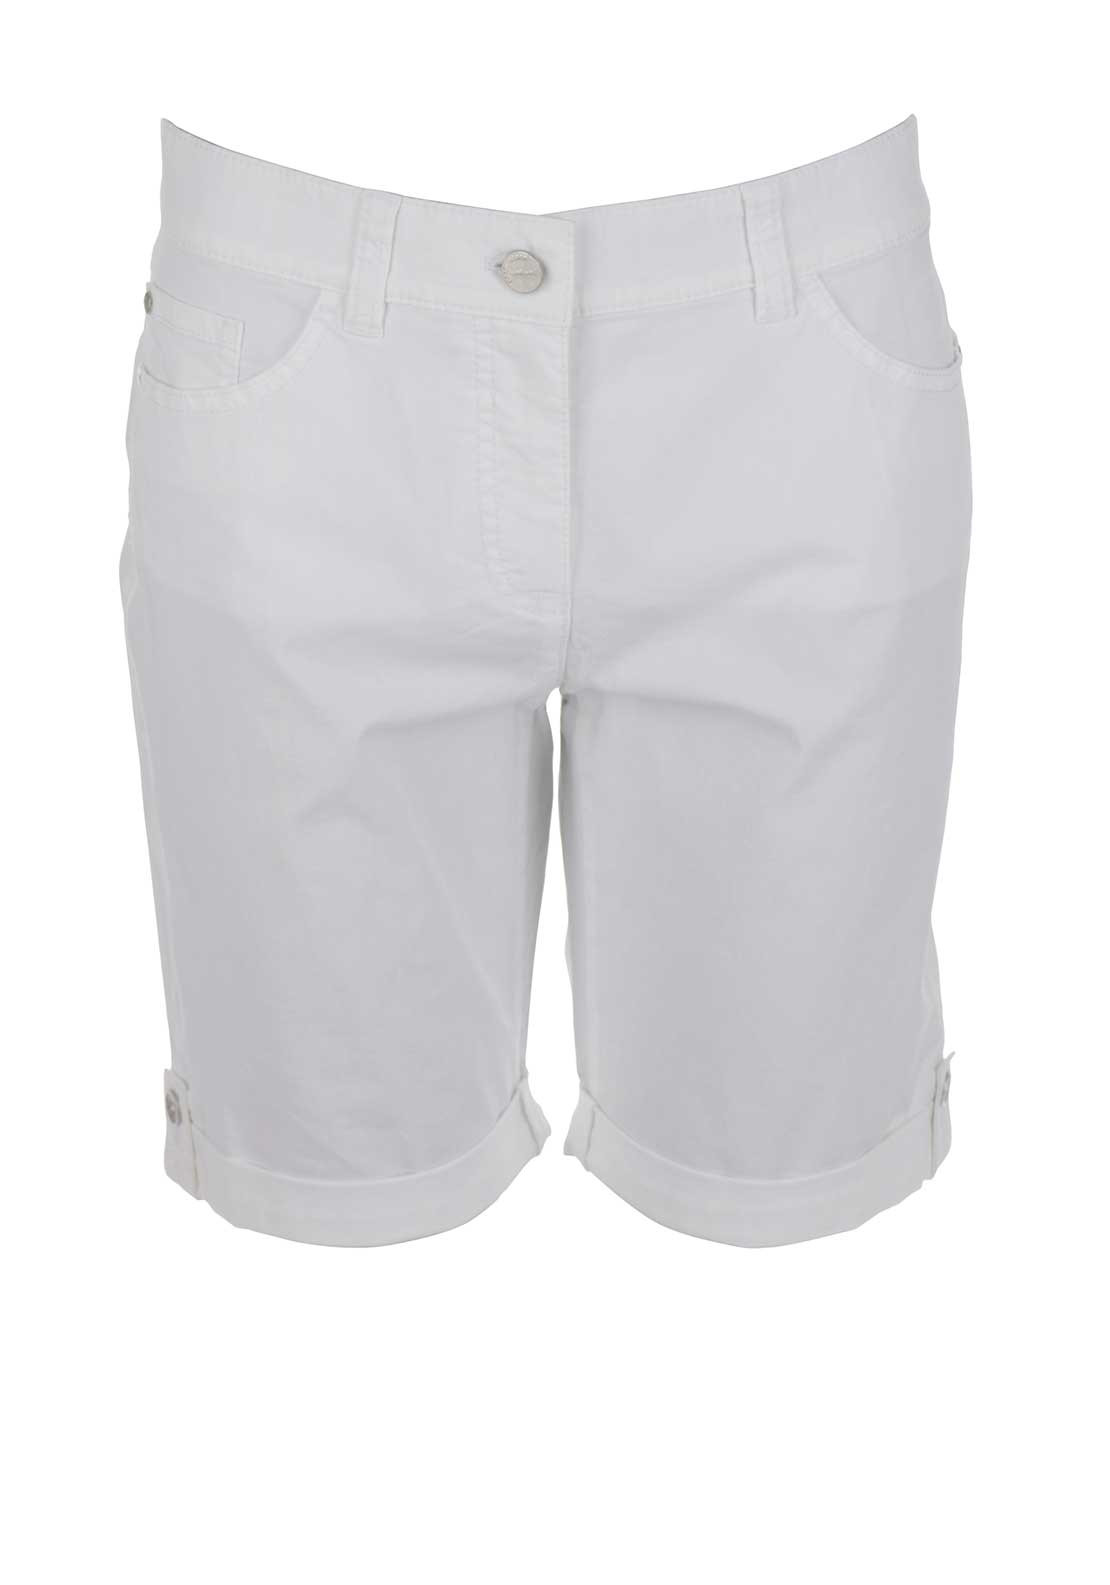 Gerry Weber Ronja Cotton Shorts, White